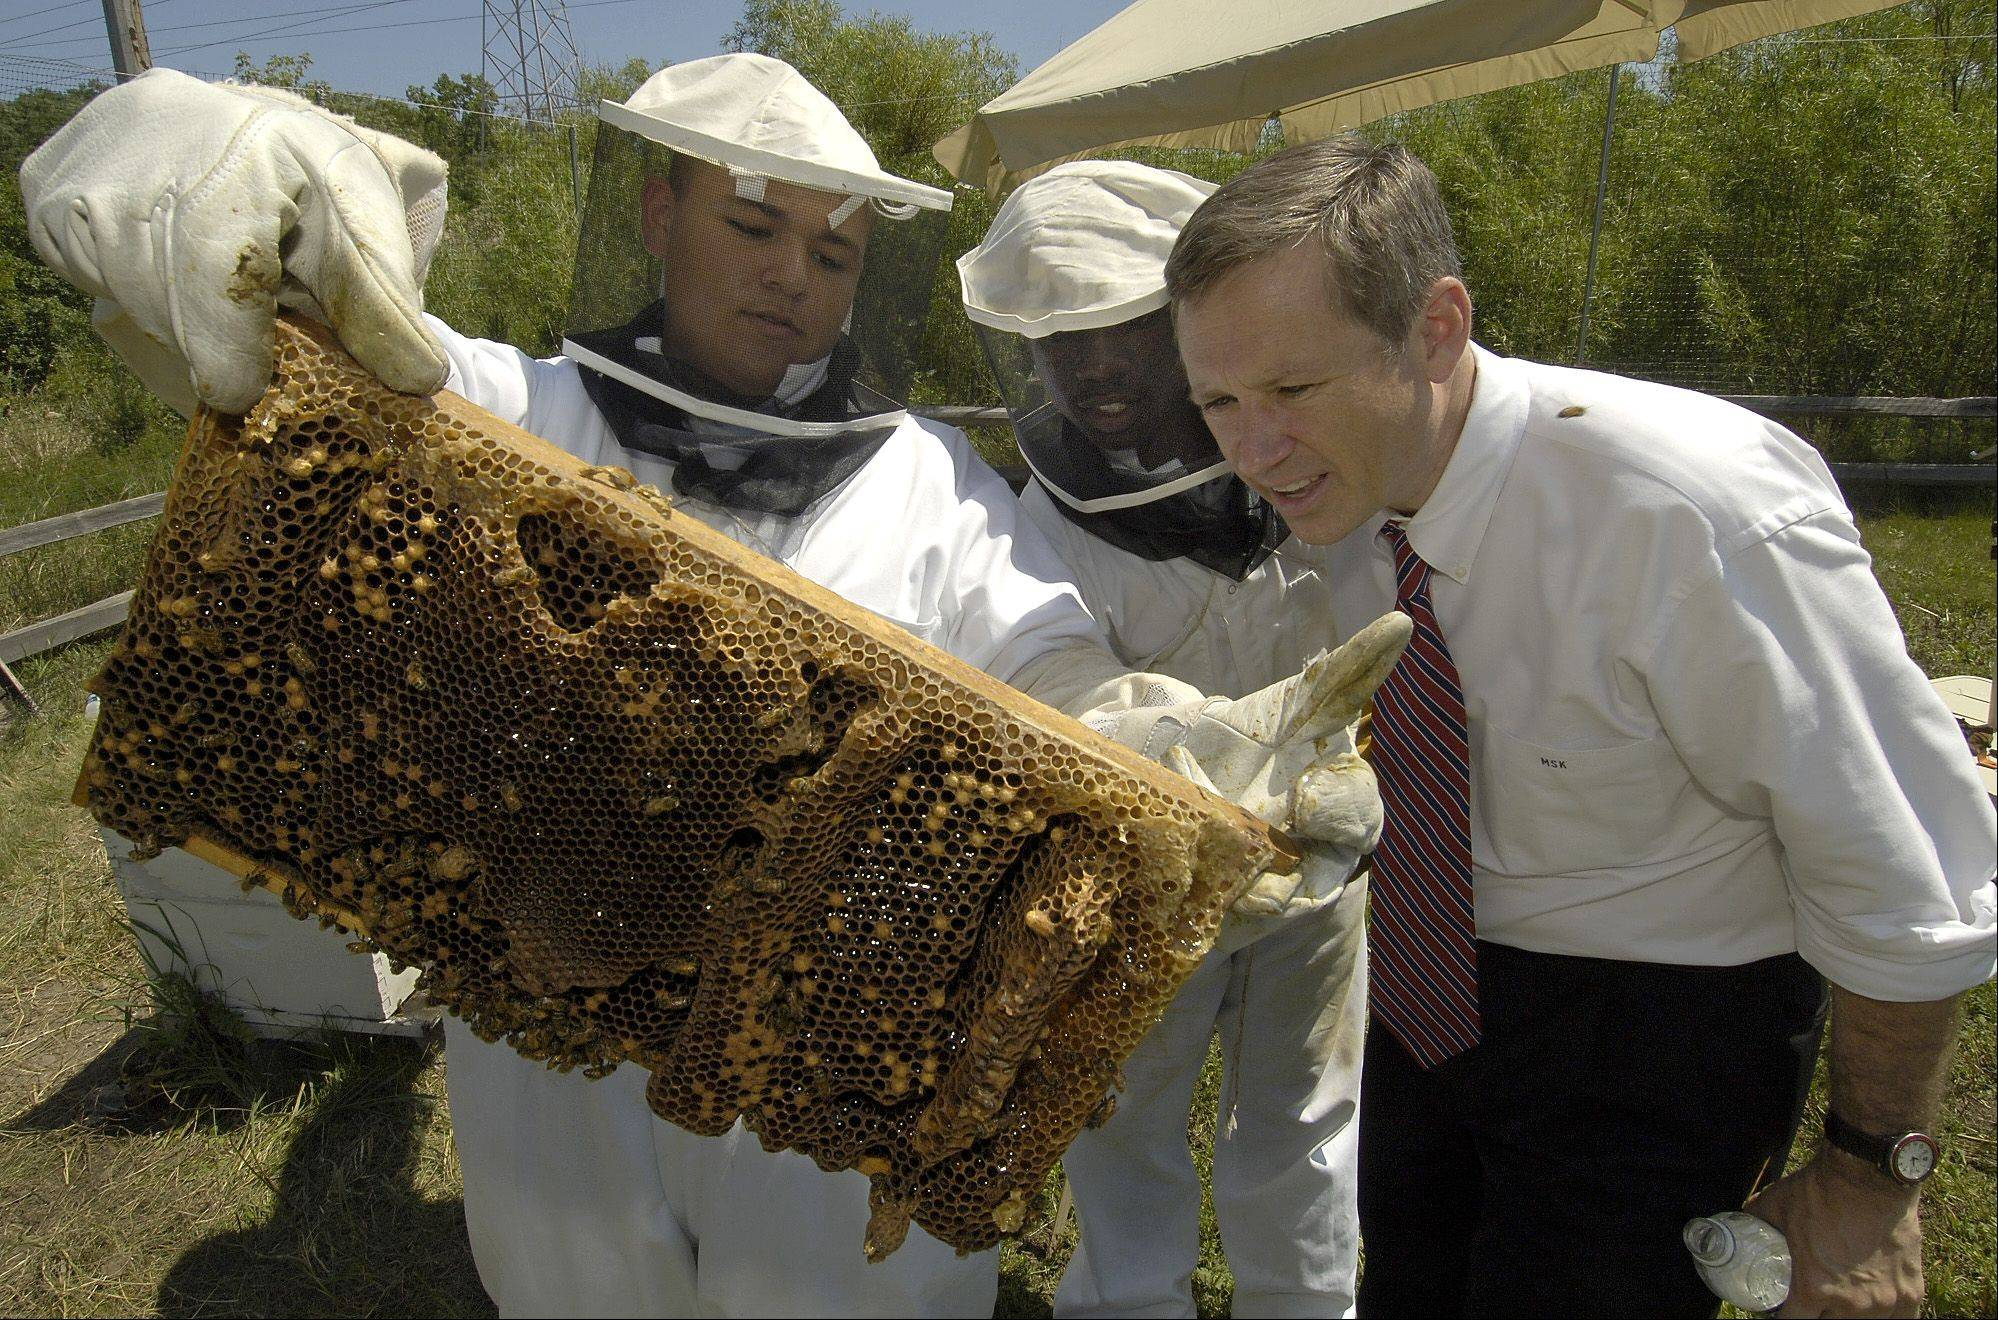 Beekeepers Ivan Acosta, left, and Khalil Harris show a panel of bees from their beehive to US Rep. Mark Kirk, who was touring the open house of the Green Youth Farm in the Greenbelt Forest Preserve in North Chicago.